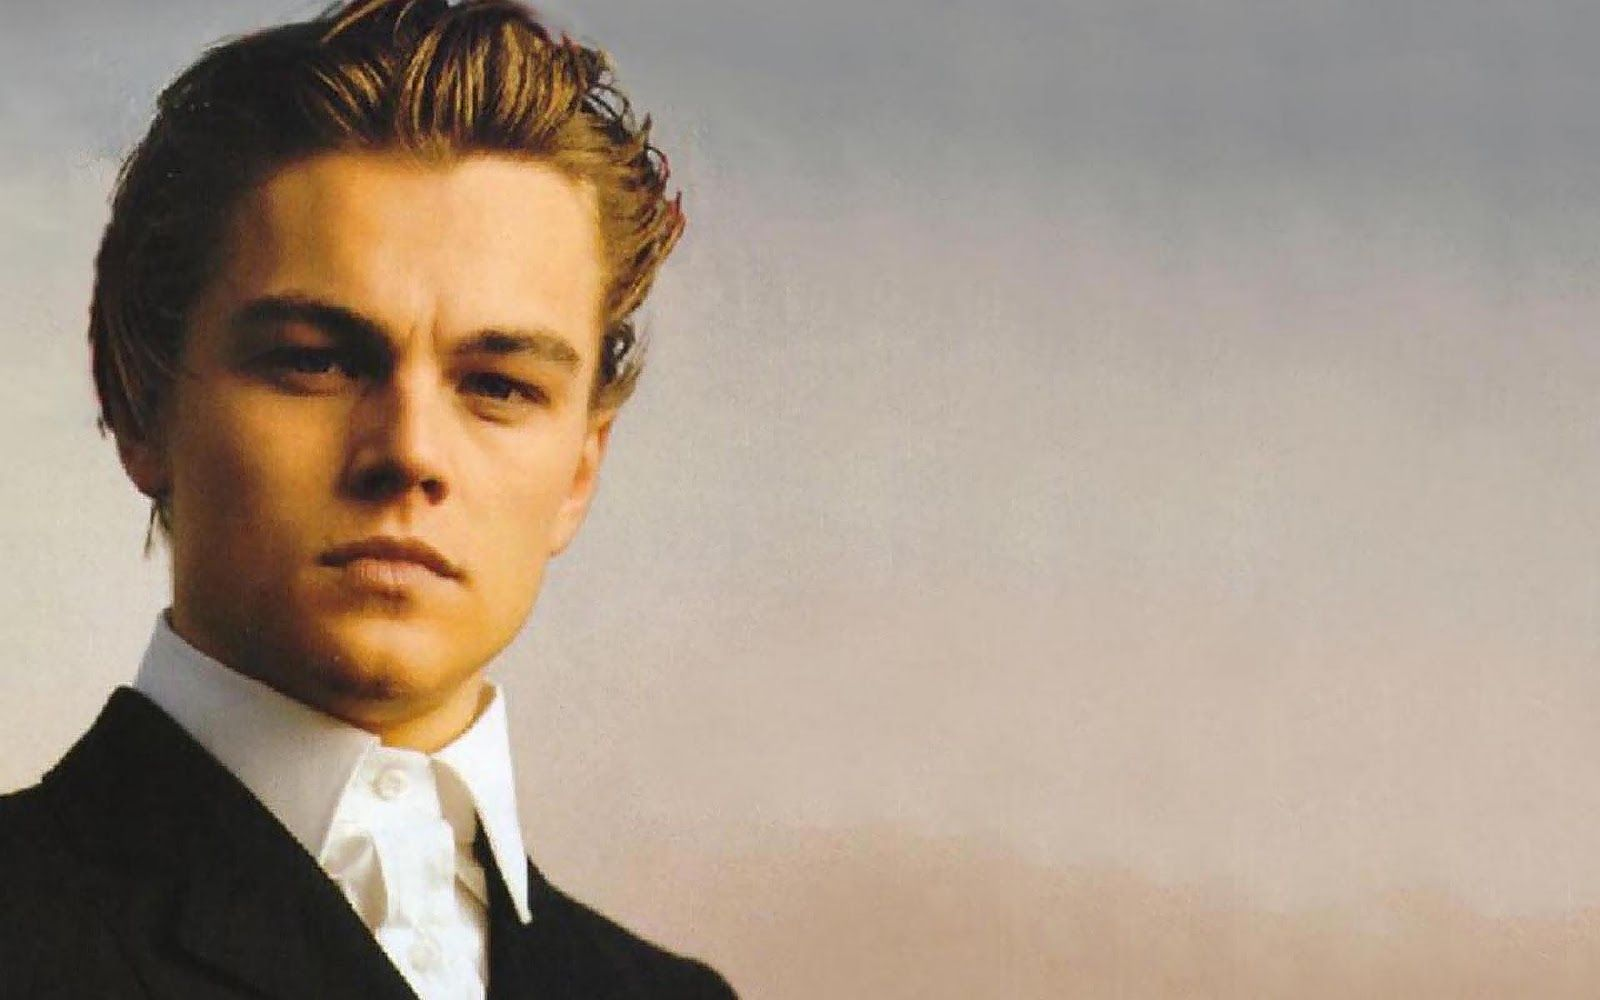 leonardo dicaprio wallpapers - best hd desktop wallpaper | dicaprio